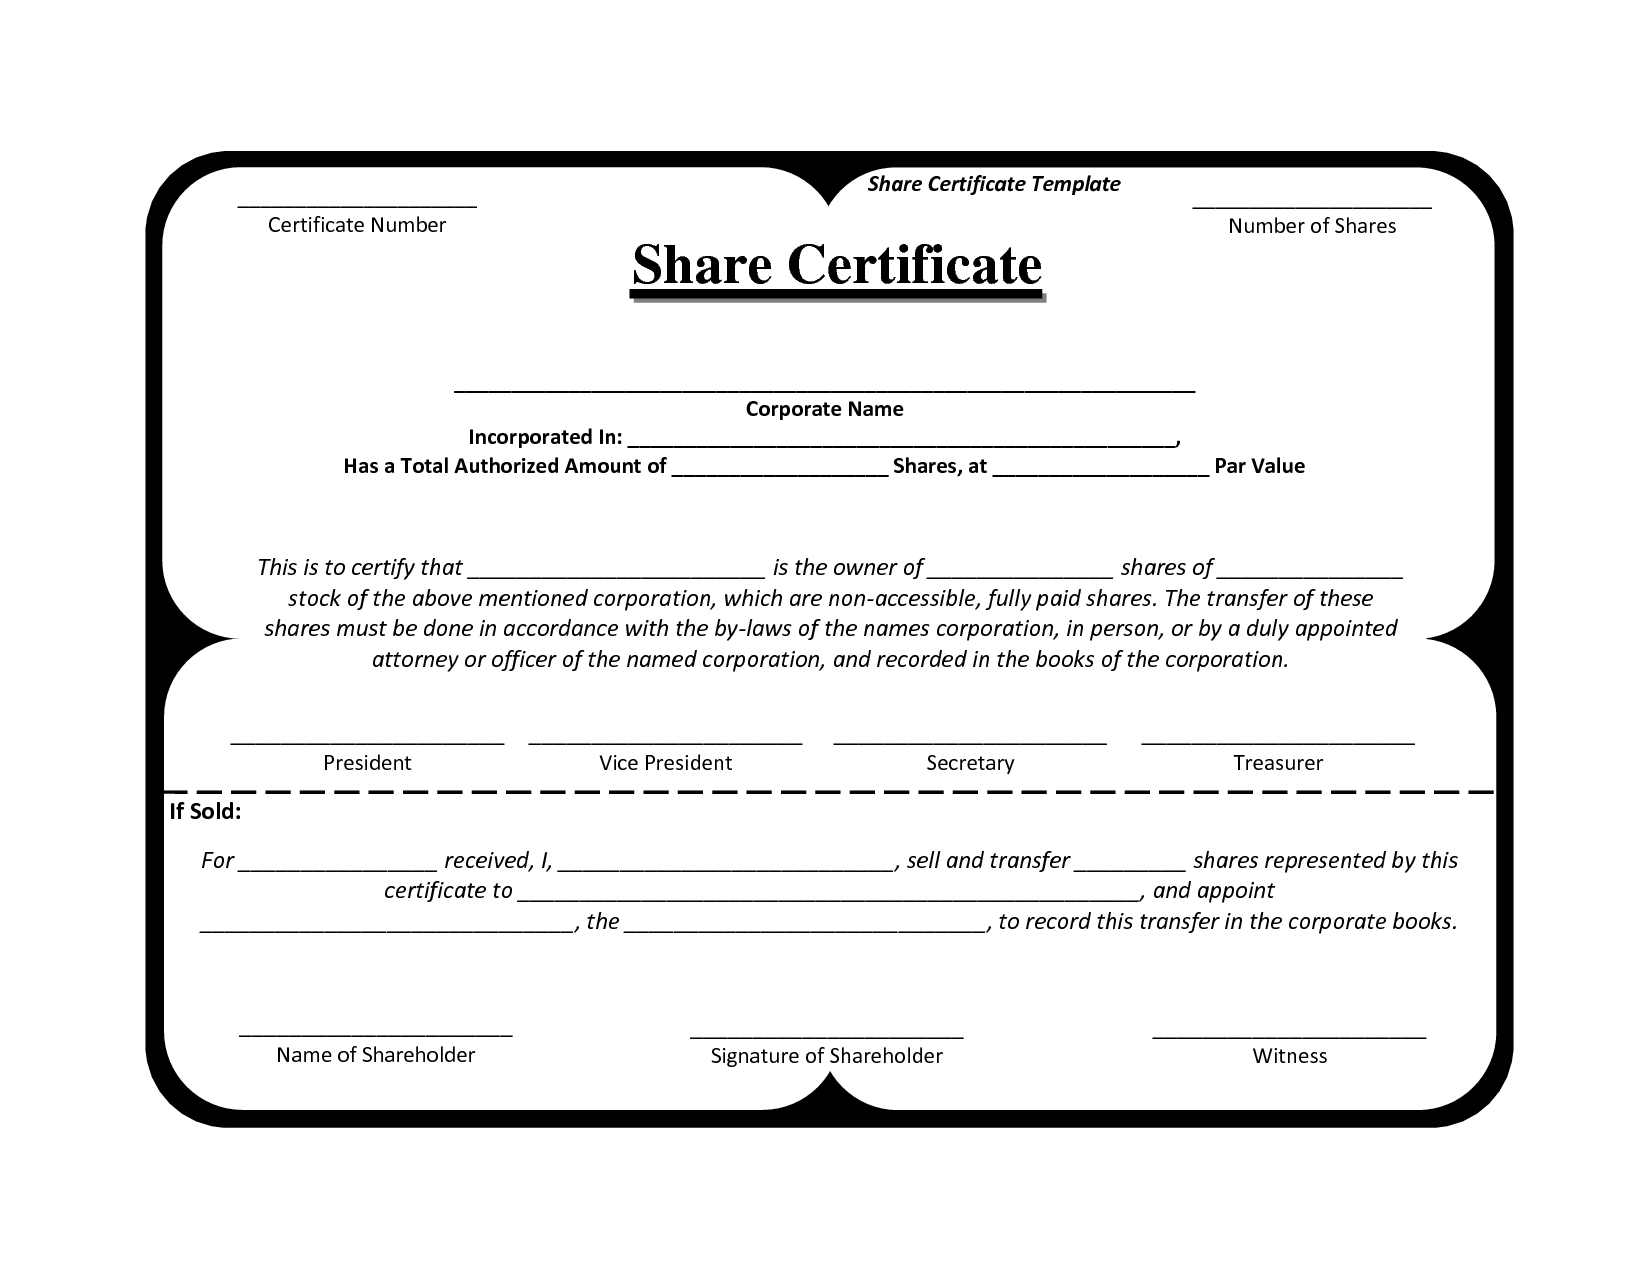 Shareholding Certificate Template | Best and Various Templates Ideas